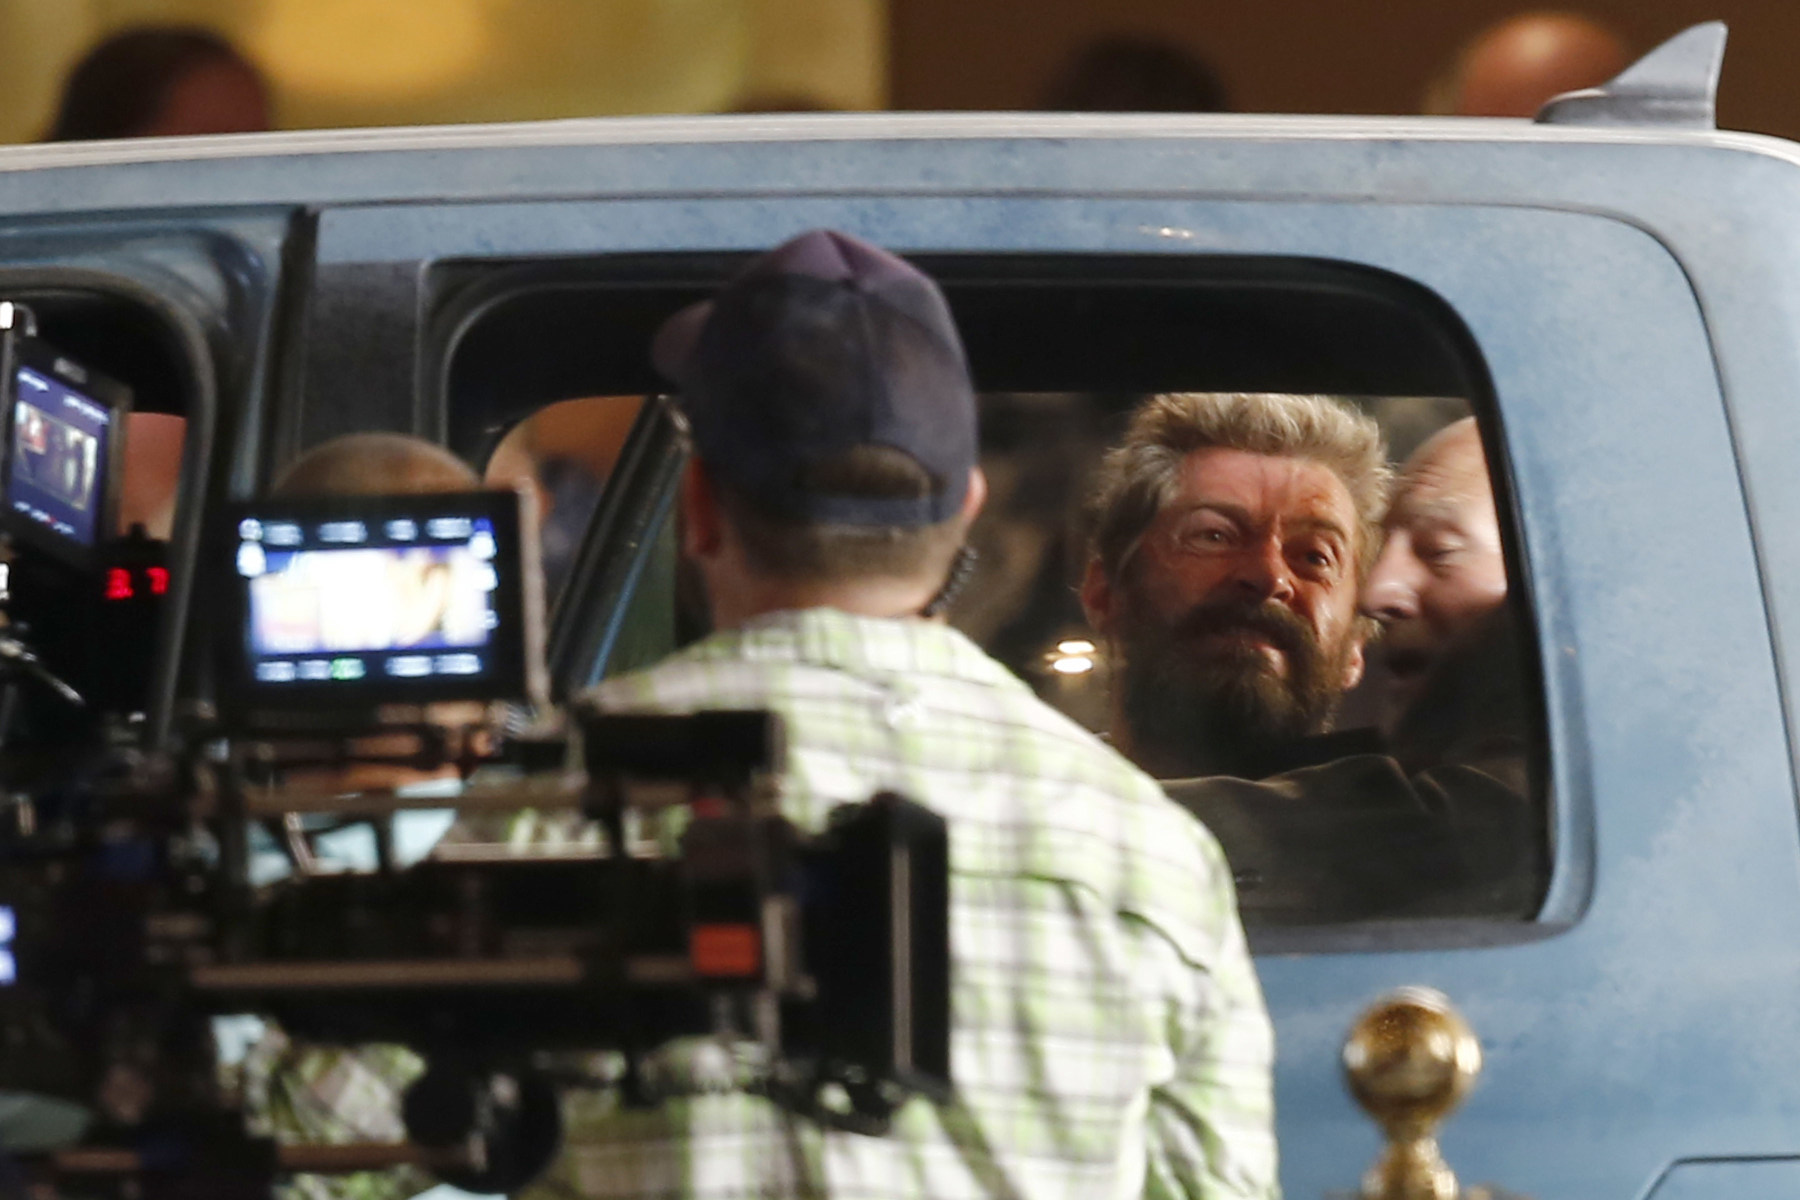 Filming Logan (2017) Behind the Scenes